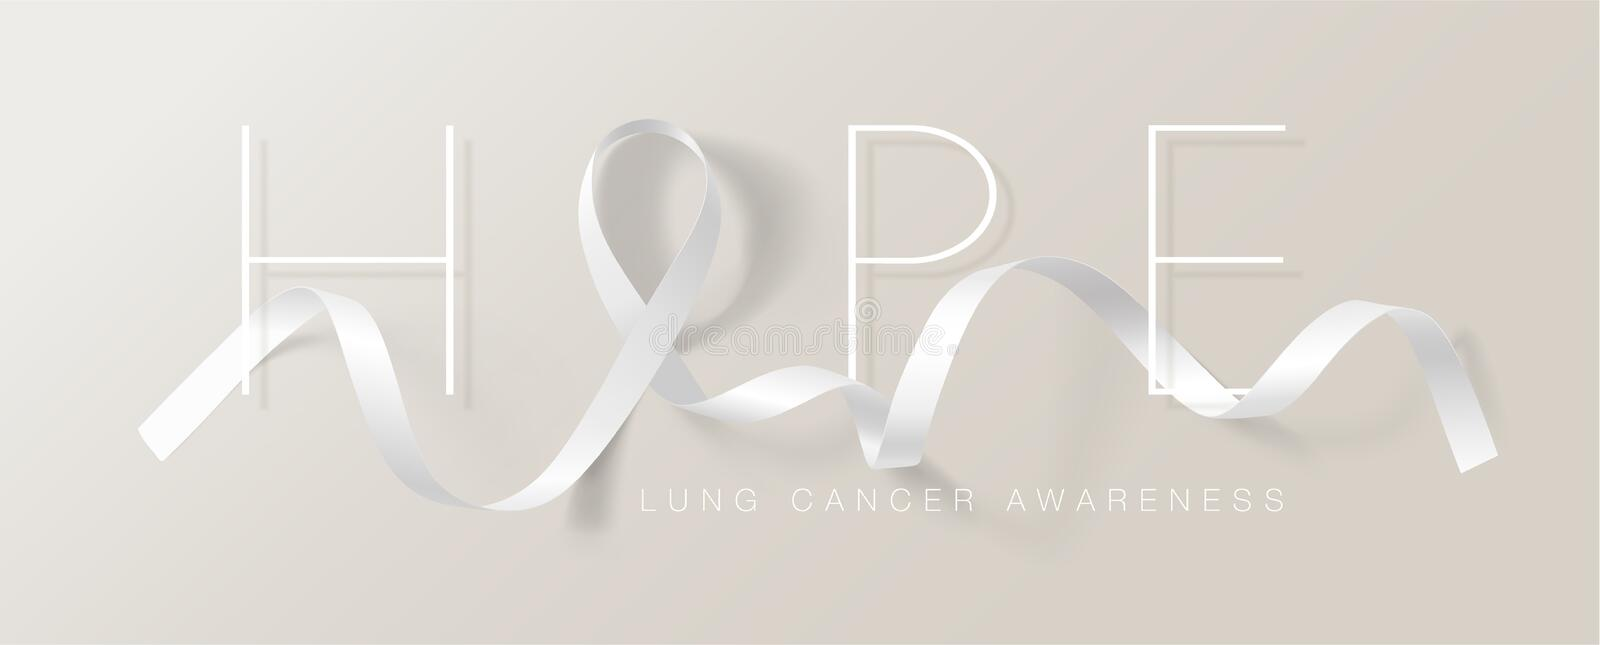 Lung Cancer Awareness Calligraphy Poster Design. Realistic White Ribbon. November is Cancer Awareness Month. Vector. Illustration stock illustration